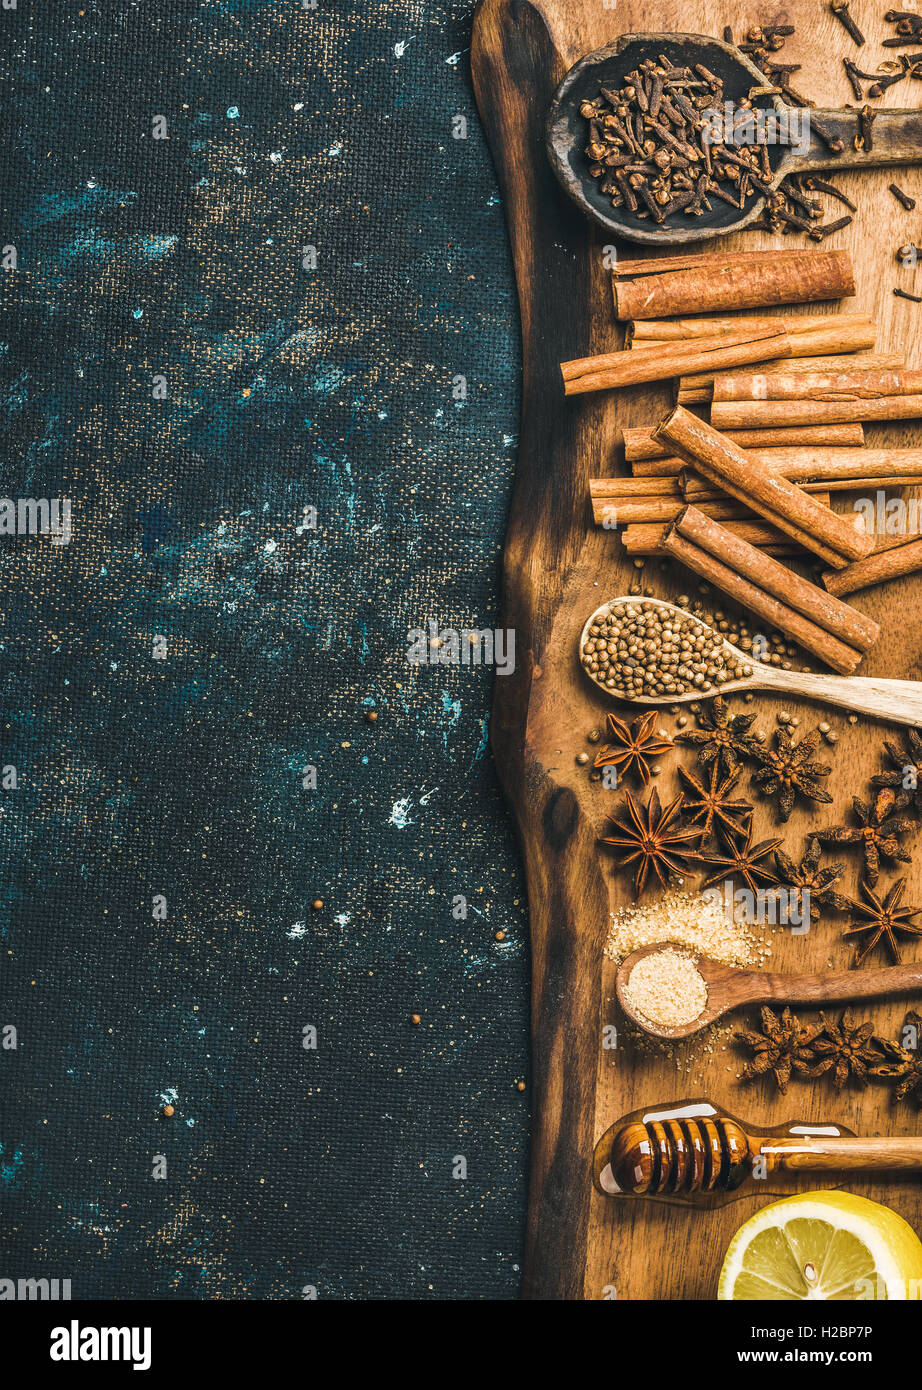 Ingredients for making gluhwein on wooden rustic board, copy space - Stock Image